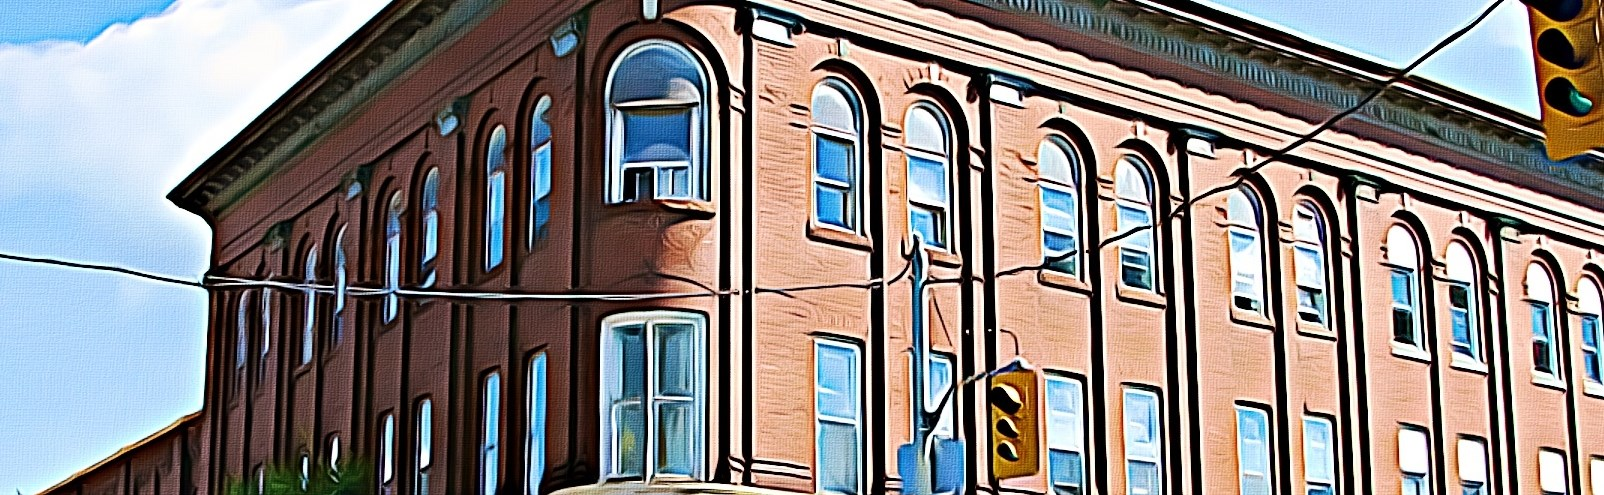 Painting of historic  2 storey curved red brick corner building